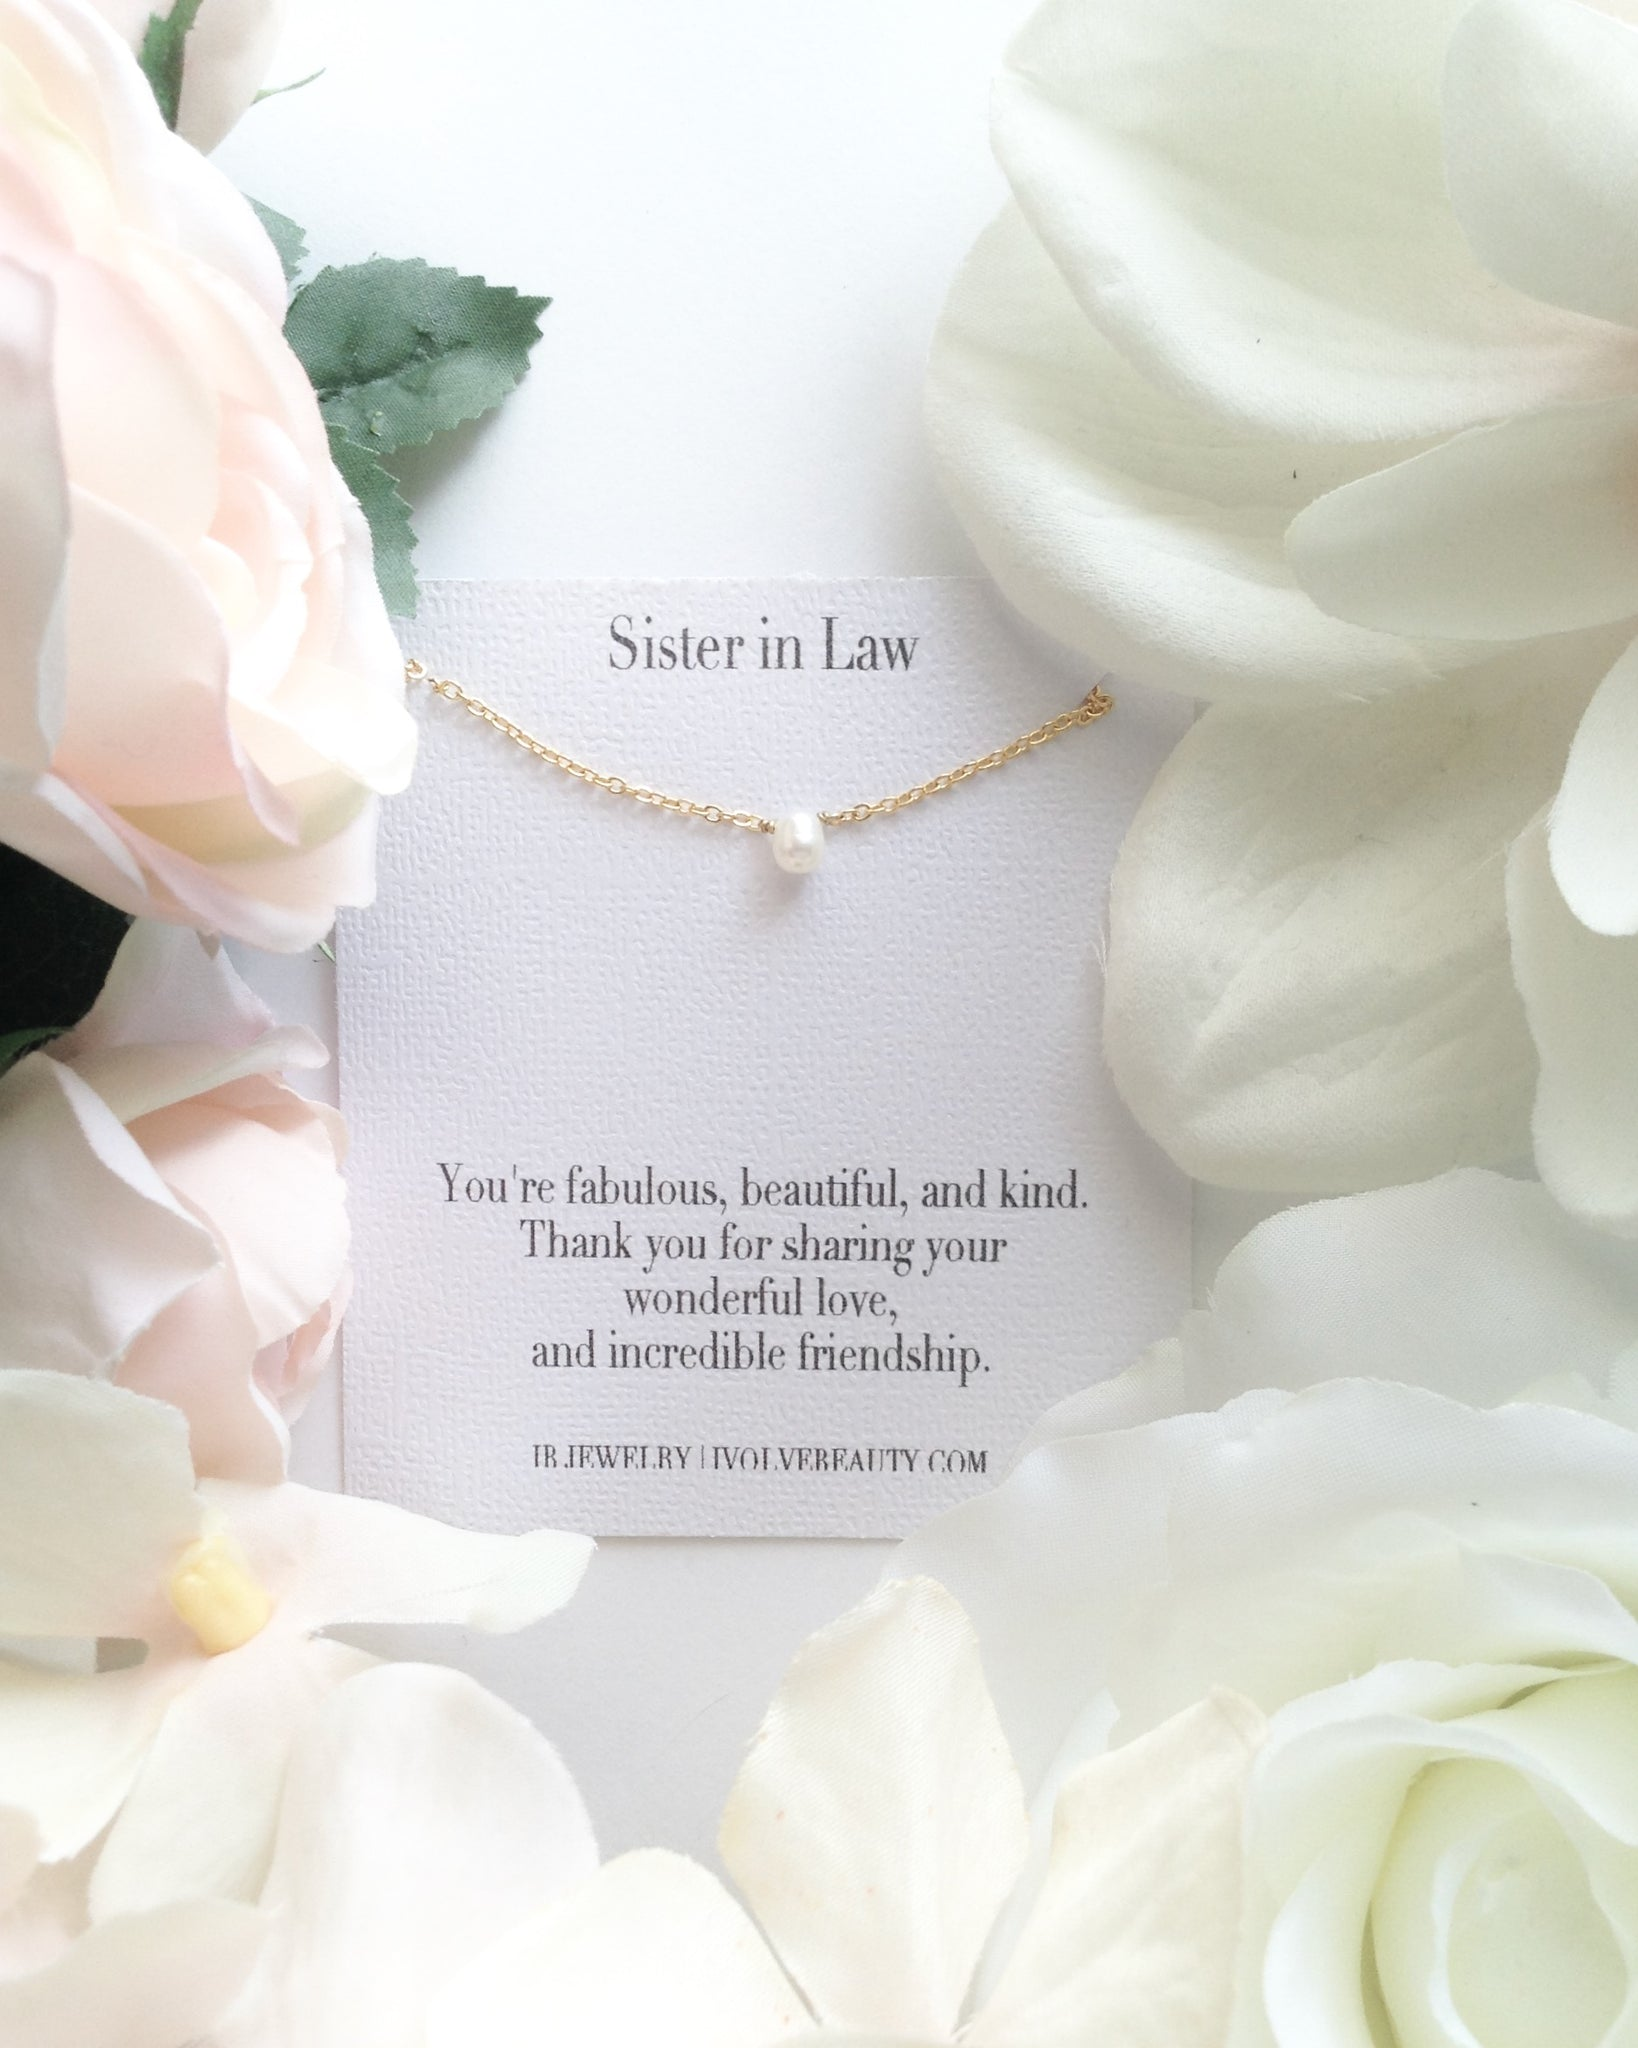 Sister in Law Necklace Jewelry Gifts